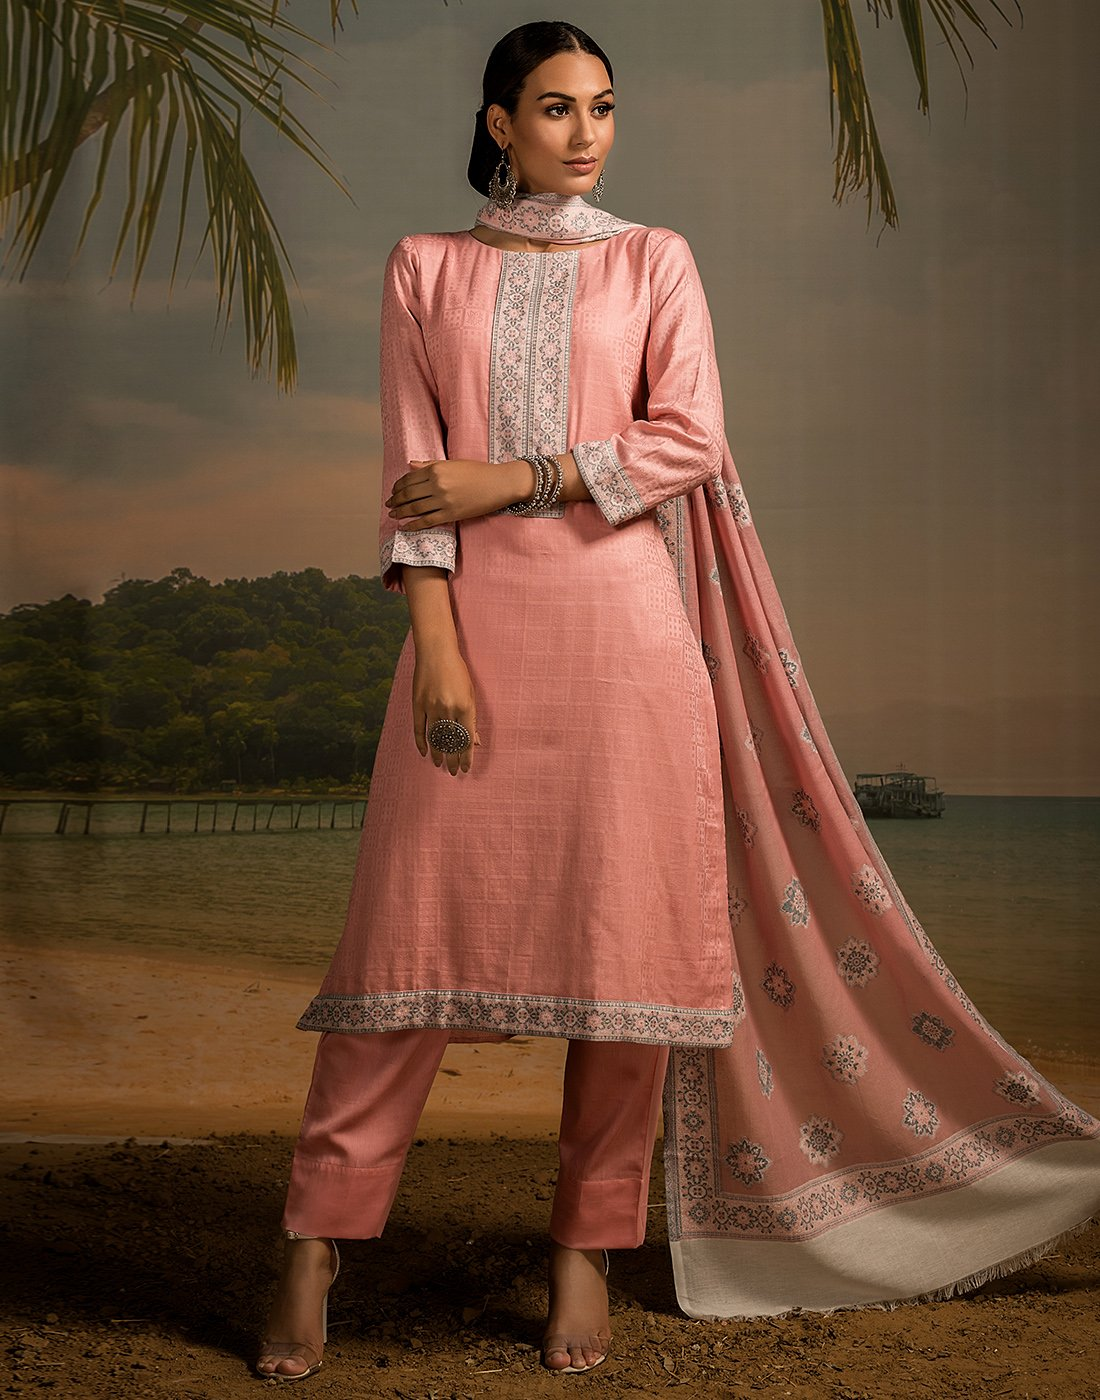 Cotton Jacquard Neck Patti Suit Set with Bordered Printed Dupatta